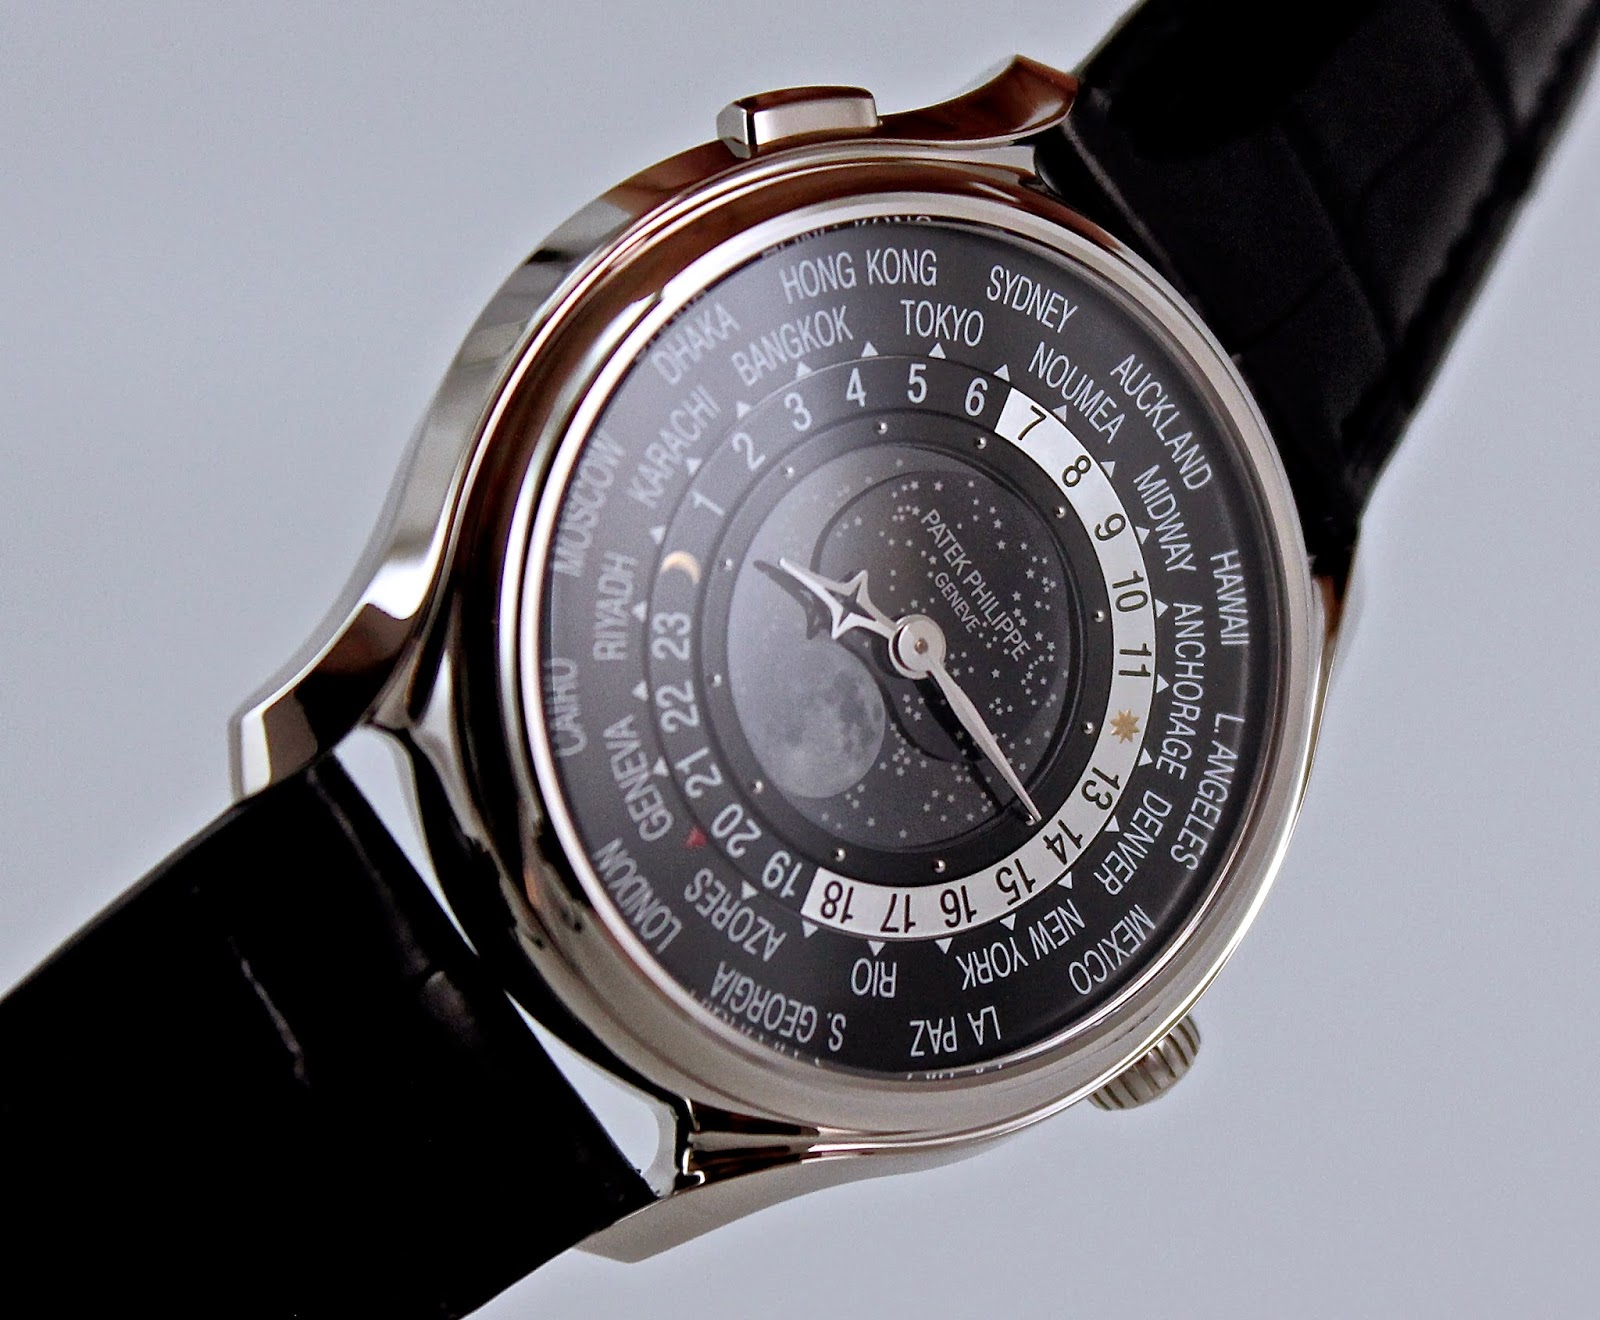 Wristwatch pictures patek philippe moonphase ref 5575 for Patek philippe moonphase